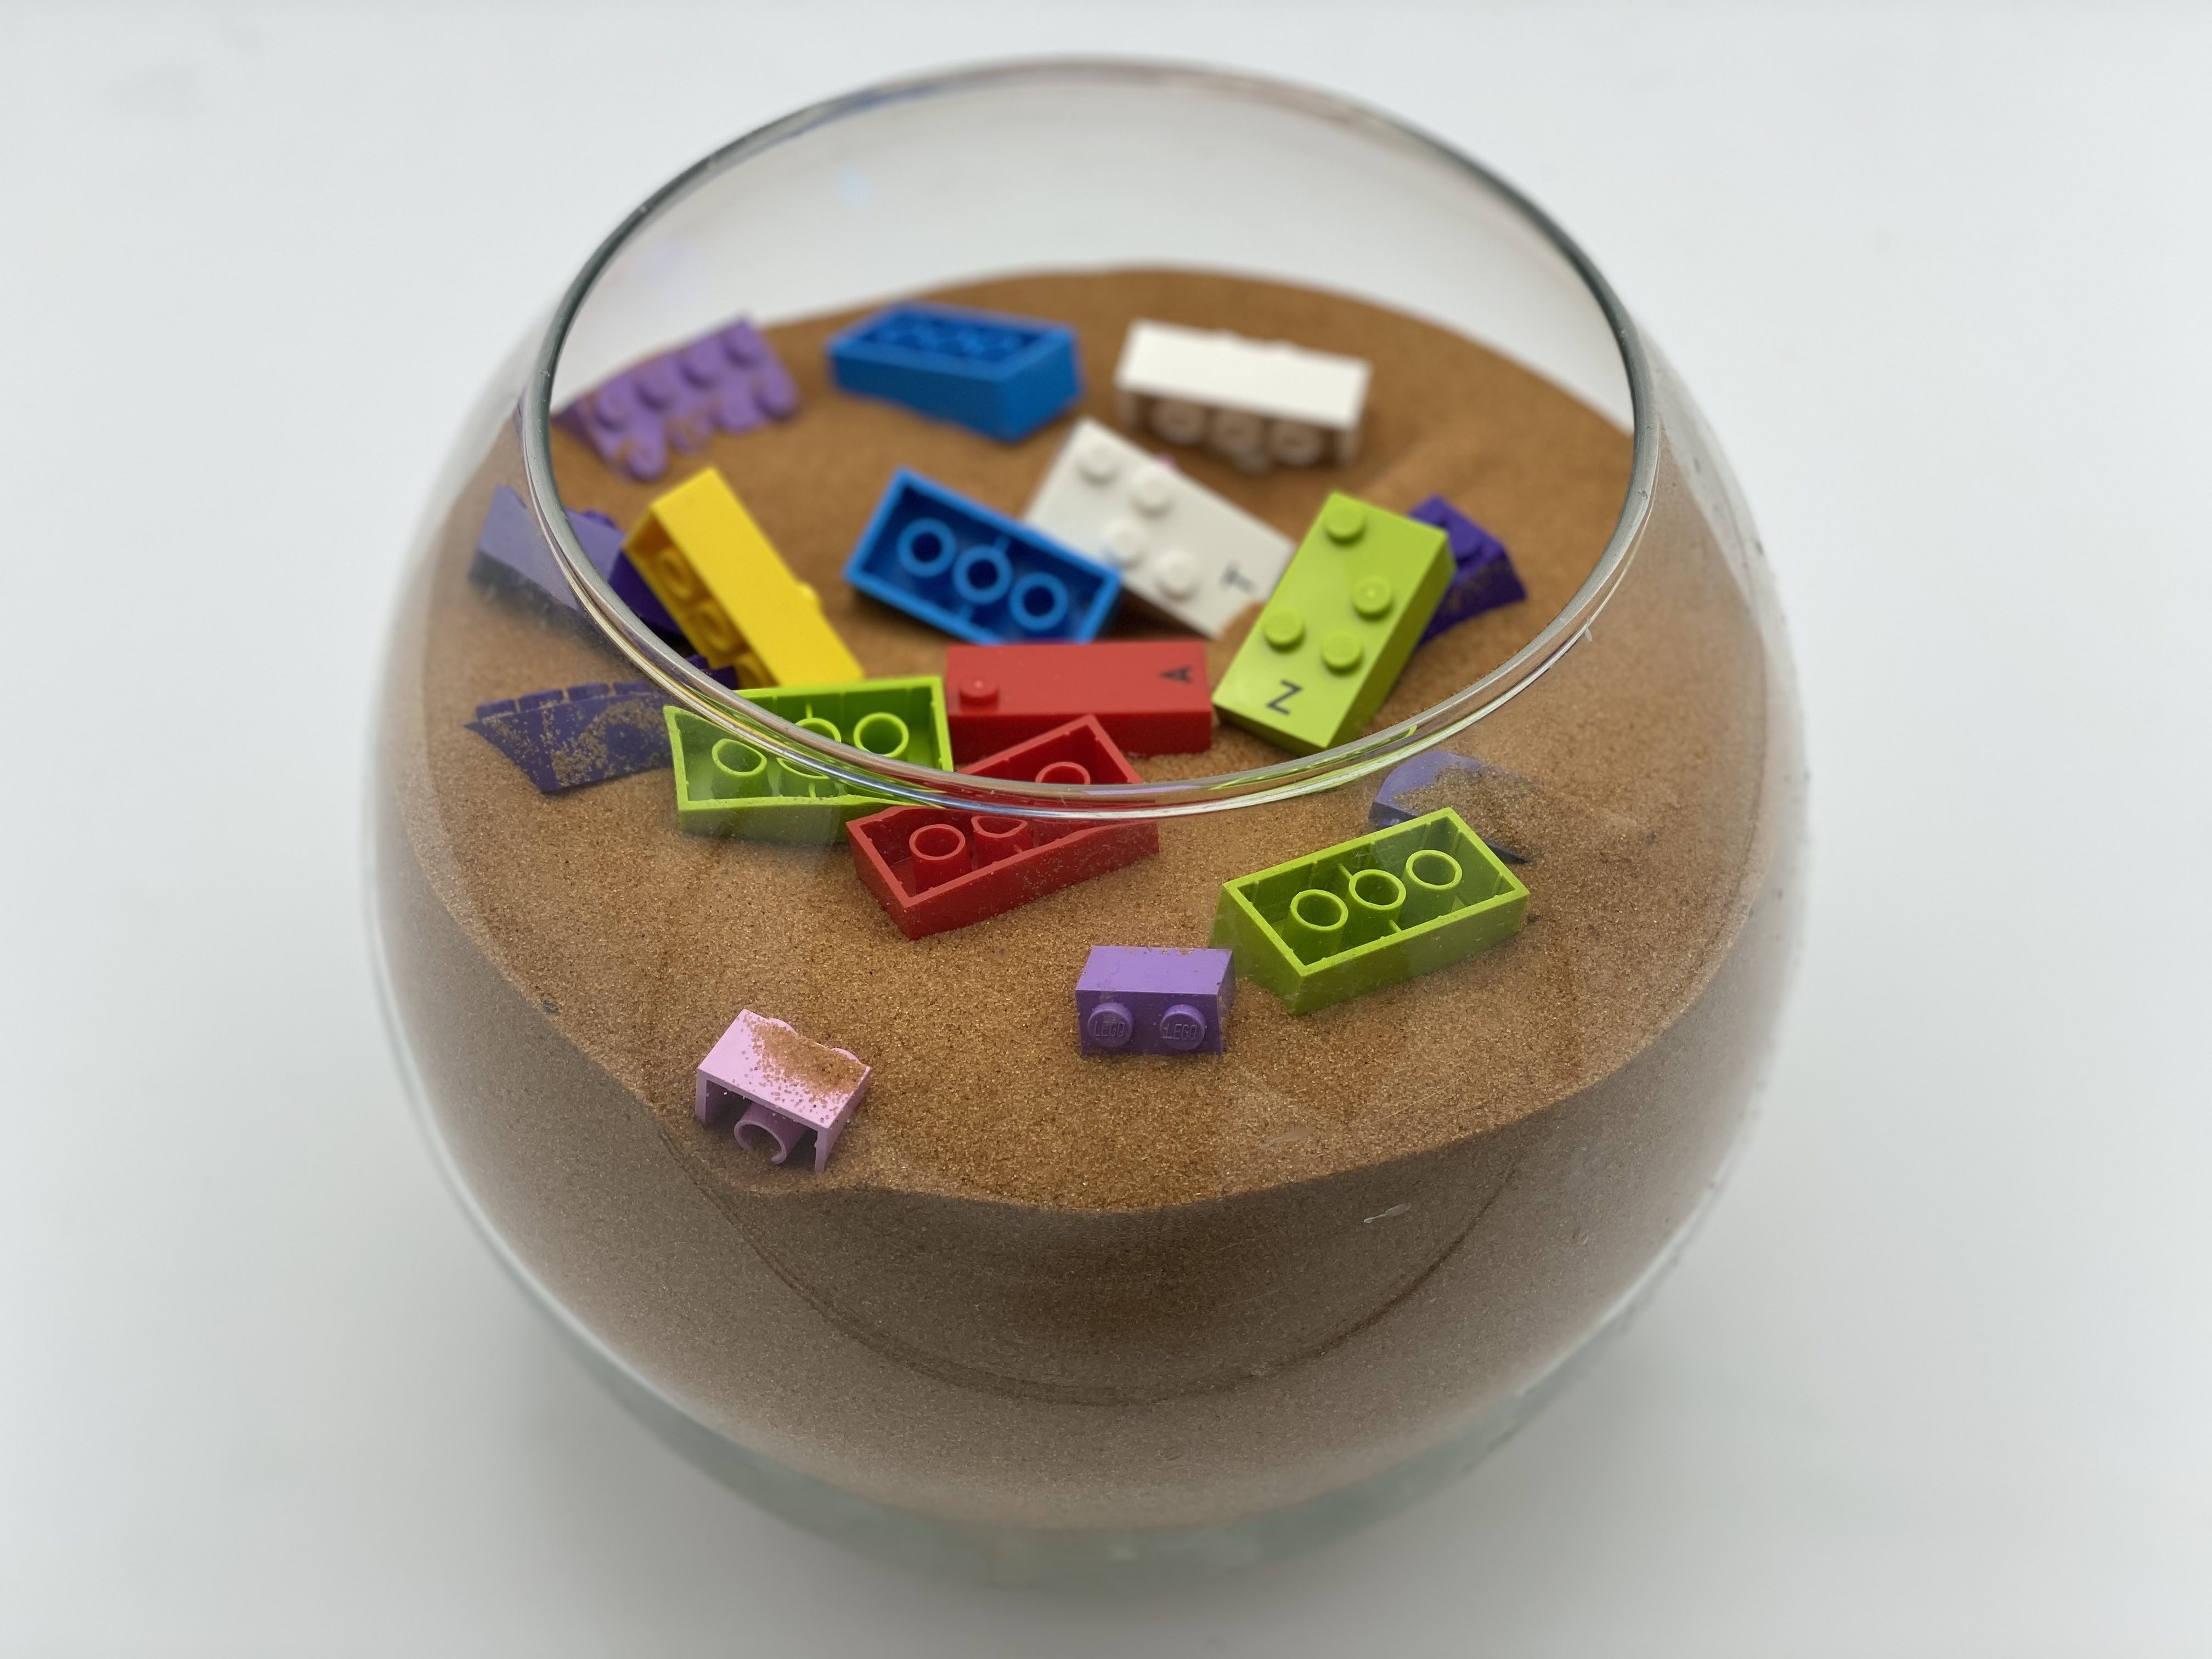 Bricks are places in a round glass aquarium, filled with sand.